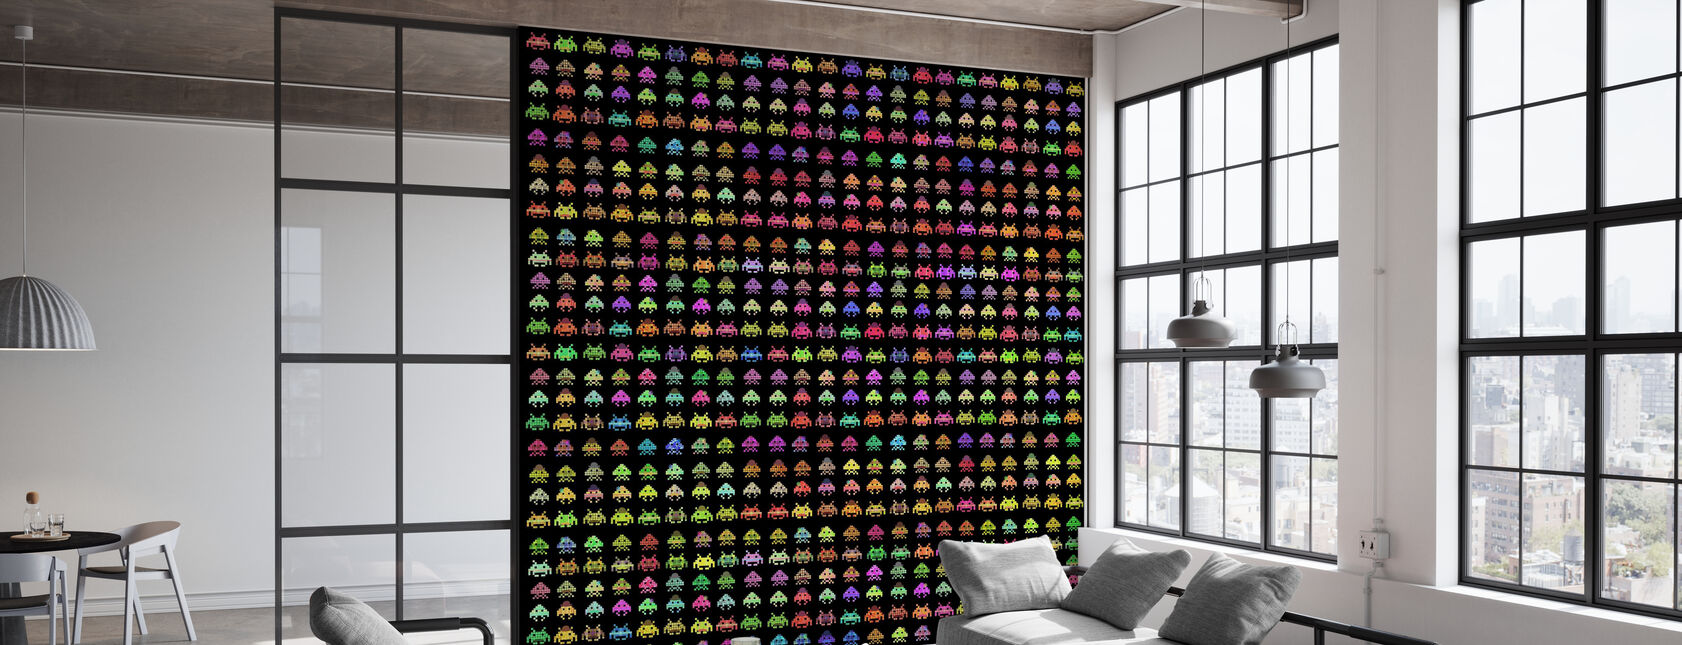 Fashionable Invaders - Wallpaper - Office